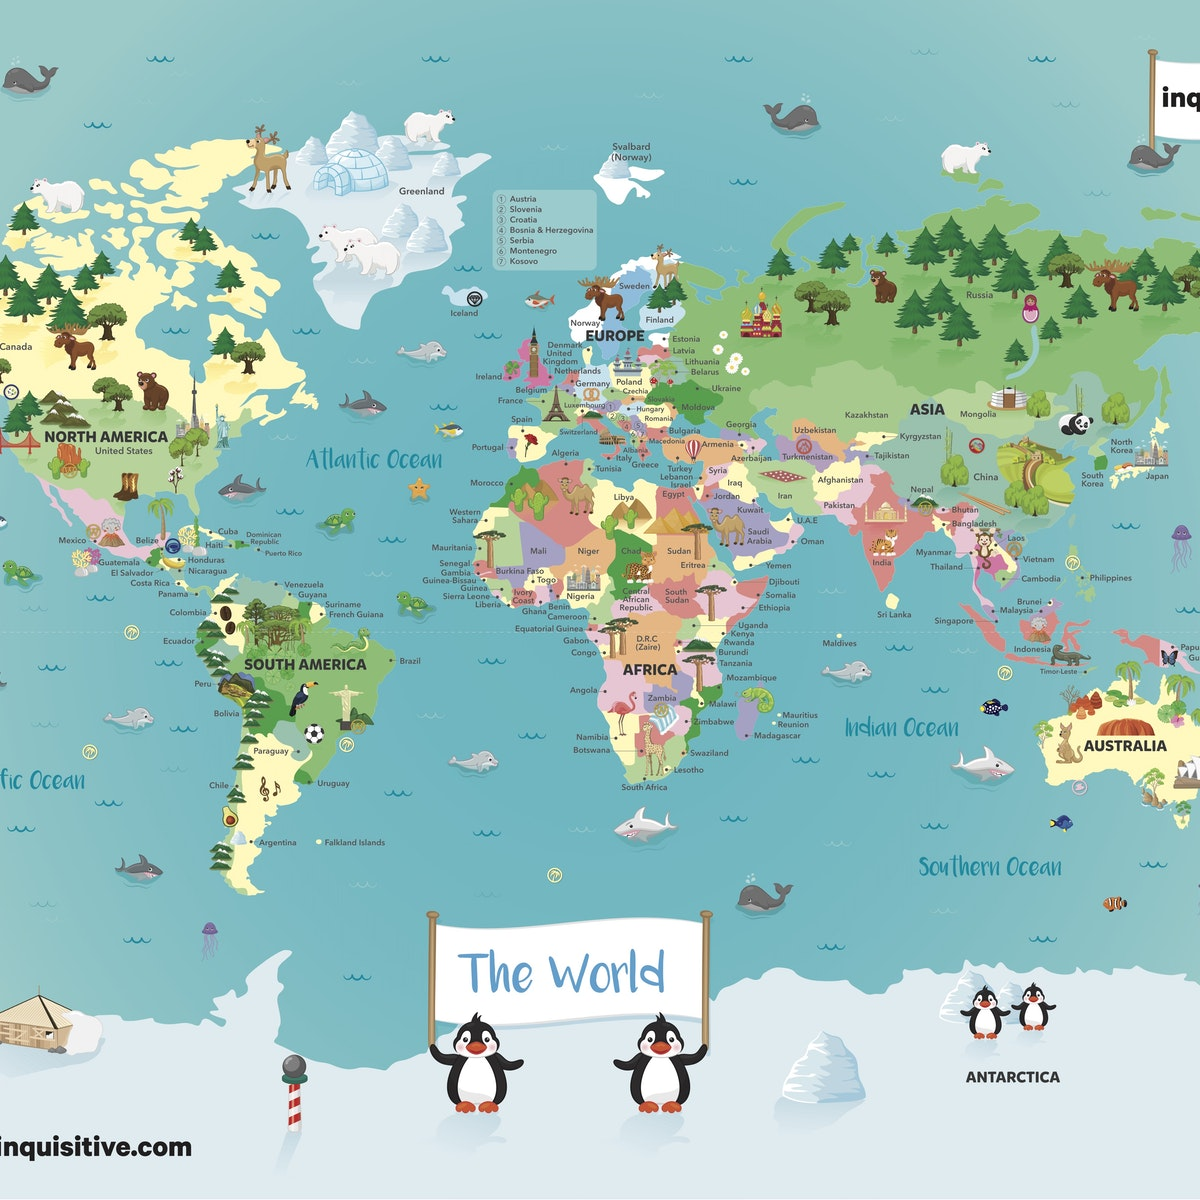 Image Map Of The World.Map Of The World Lesson Inquisitive Lesson